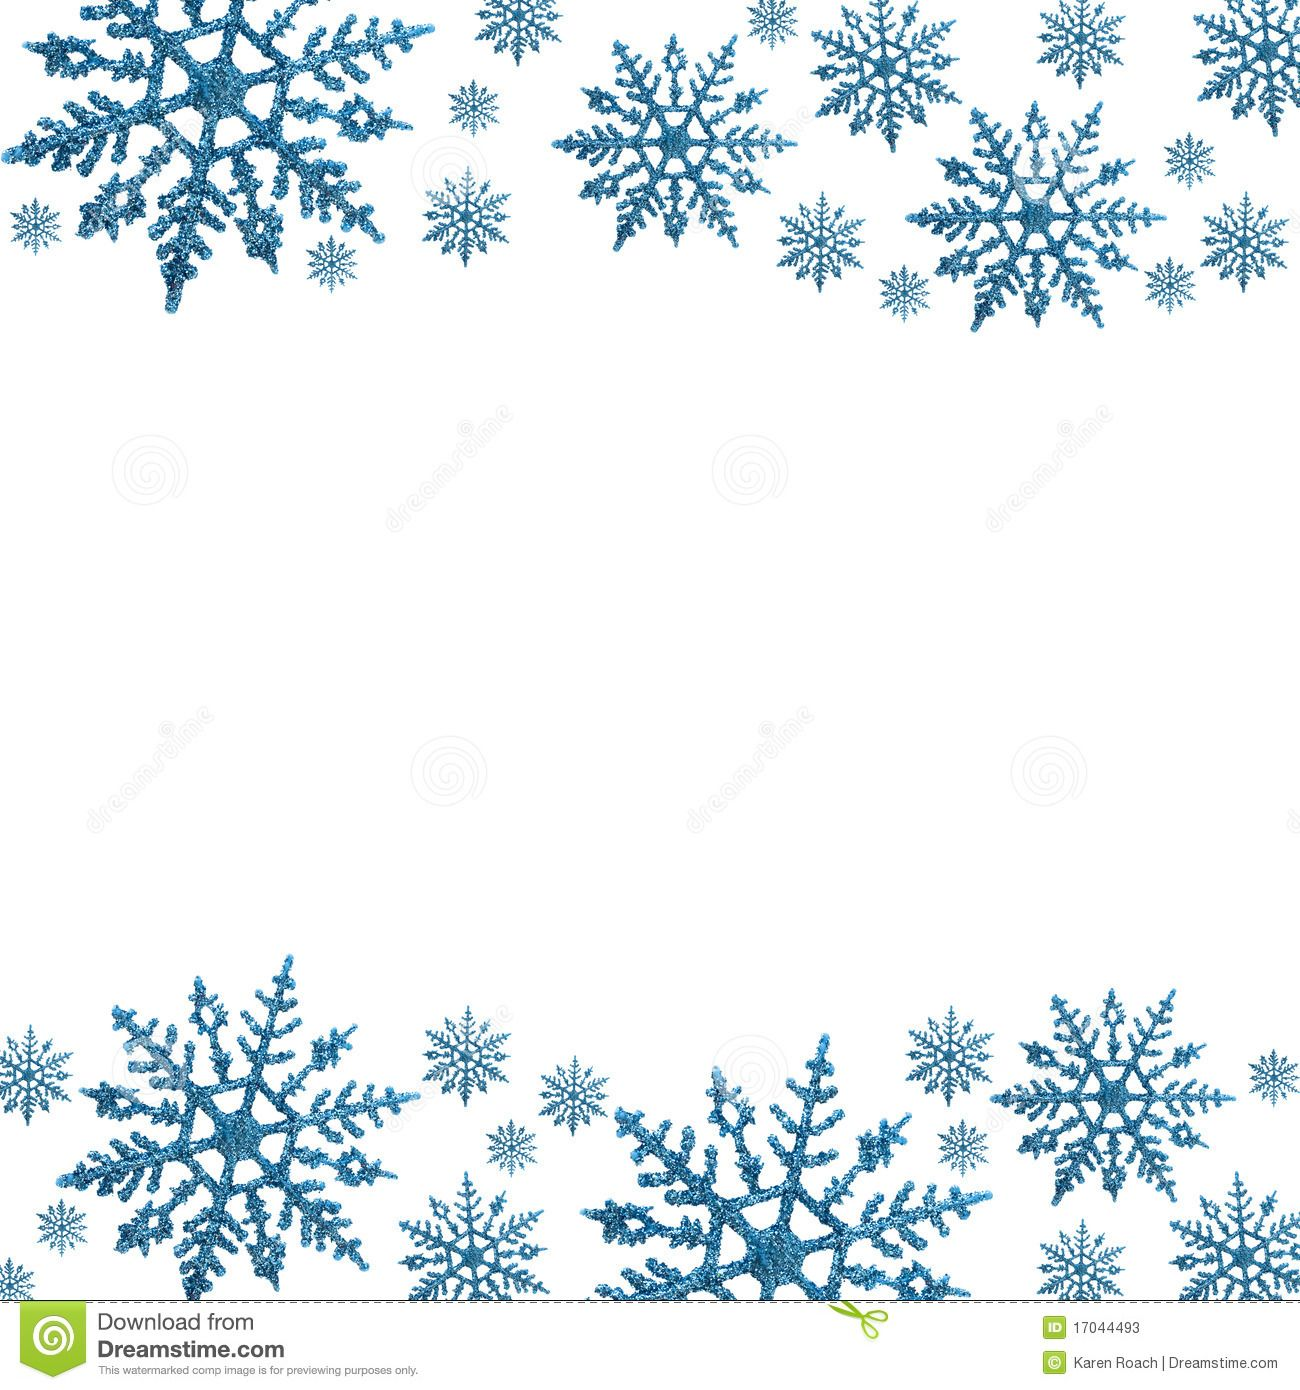 Border free large images. Winter clipart boarder